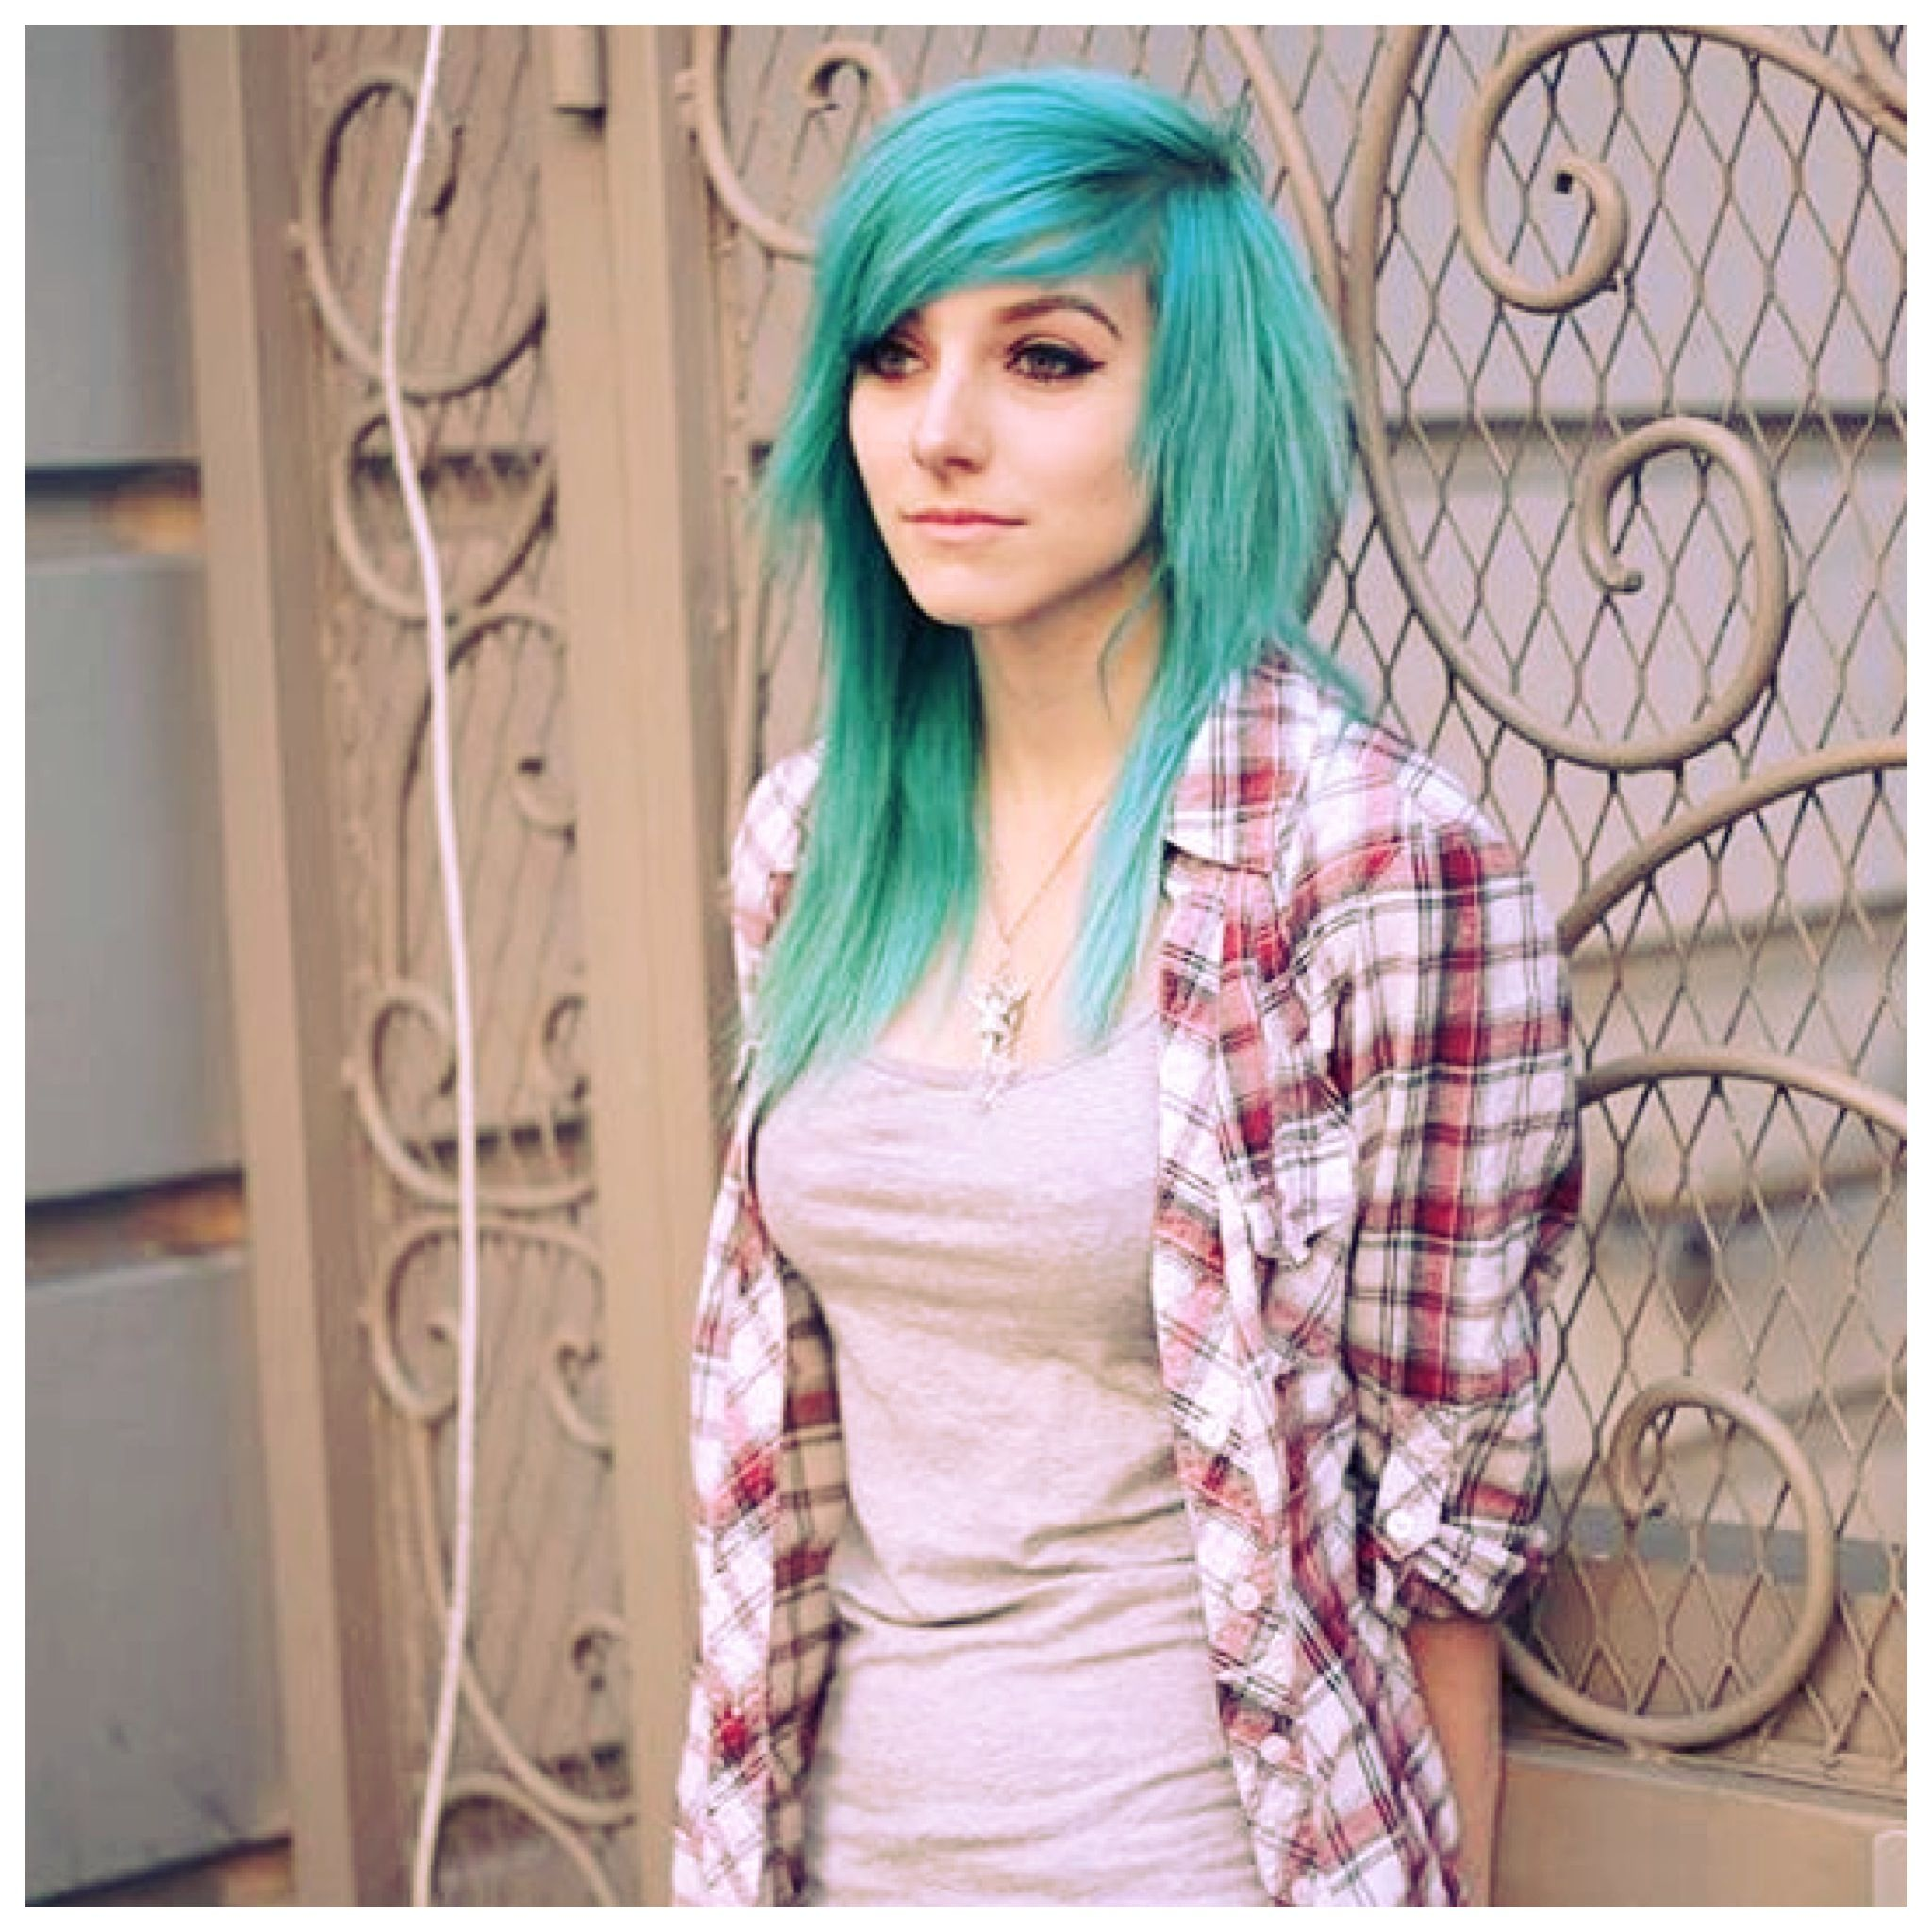 Side look of her hair ium tempted to try and cut my hair like this